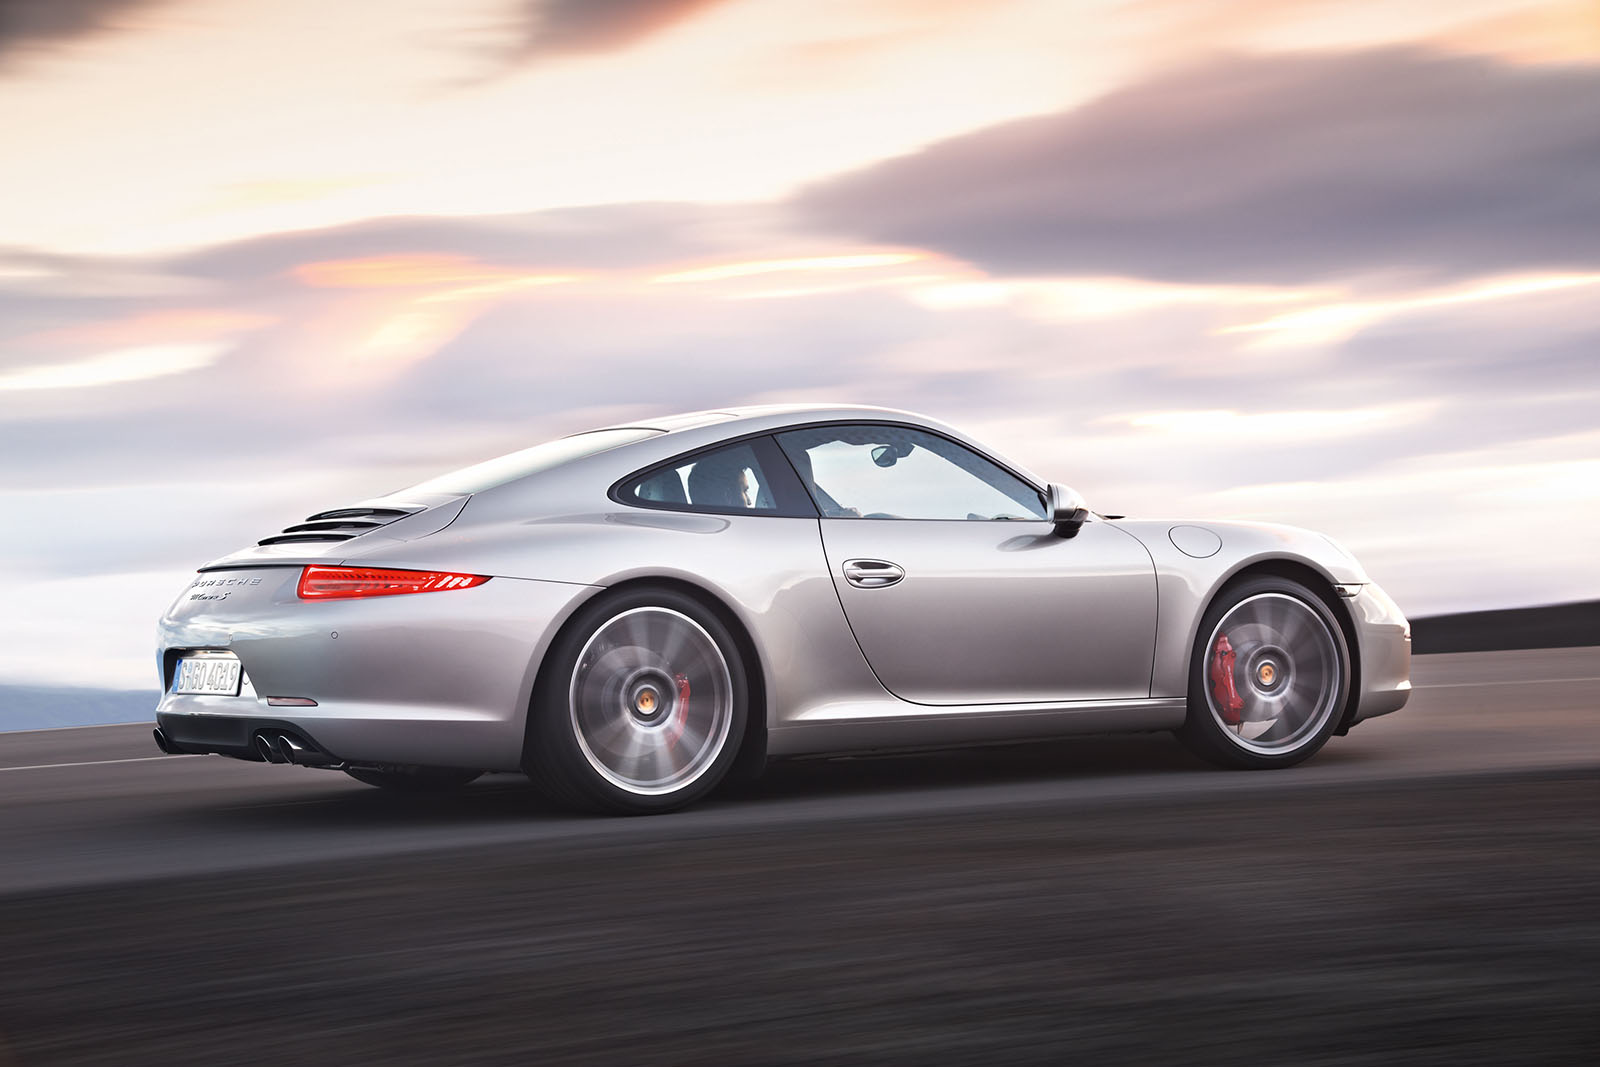 Porsche Remains On Top In 2014 J.D. Power APEAL Study